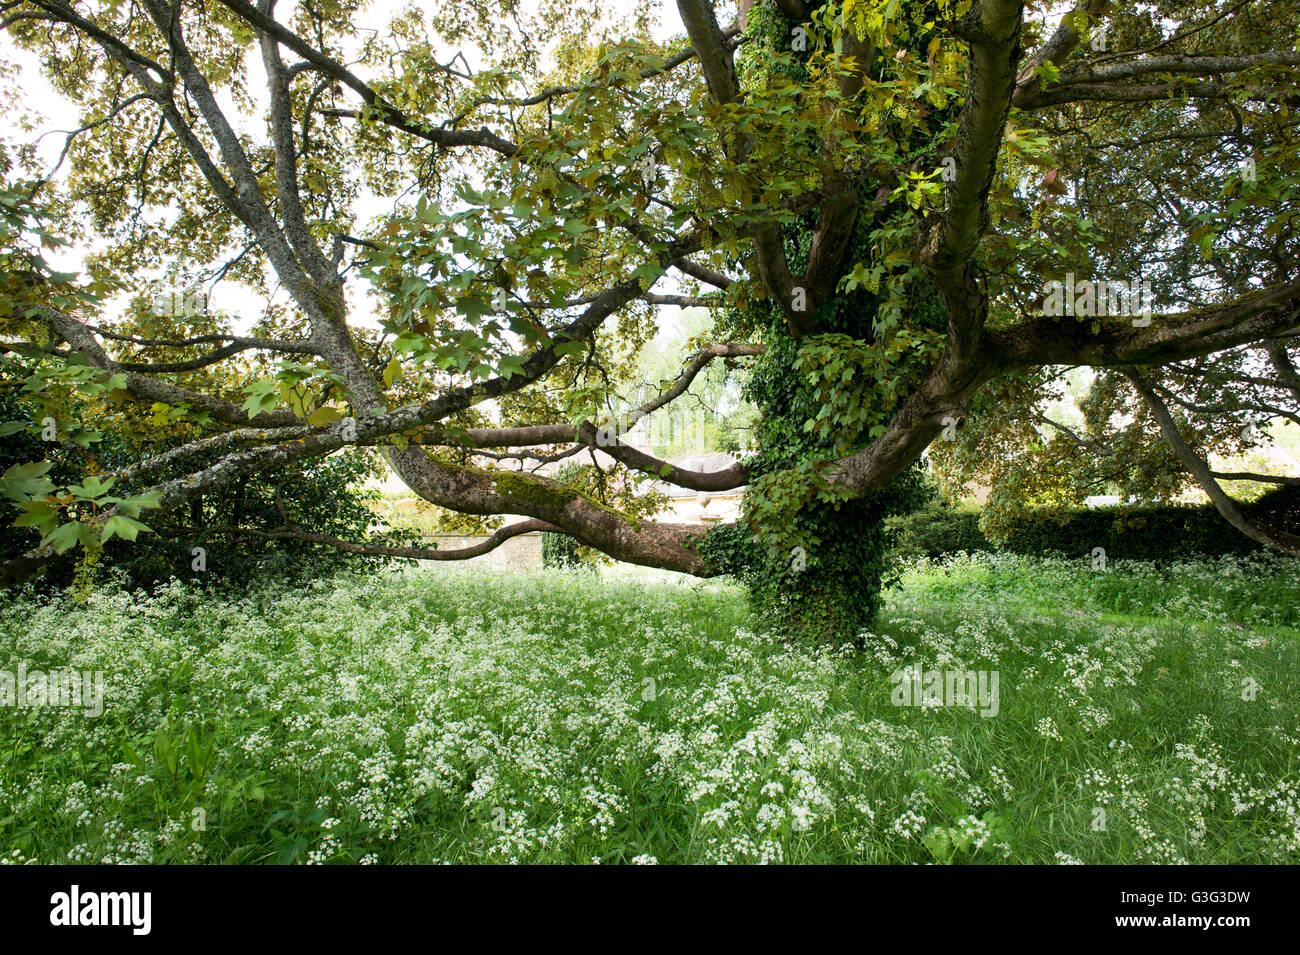 Old Acer Campestre tree. Field maple tree in spring. UK - Stock Image